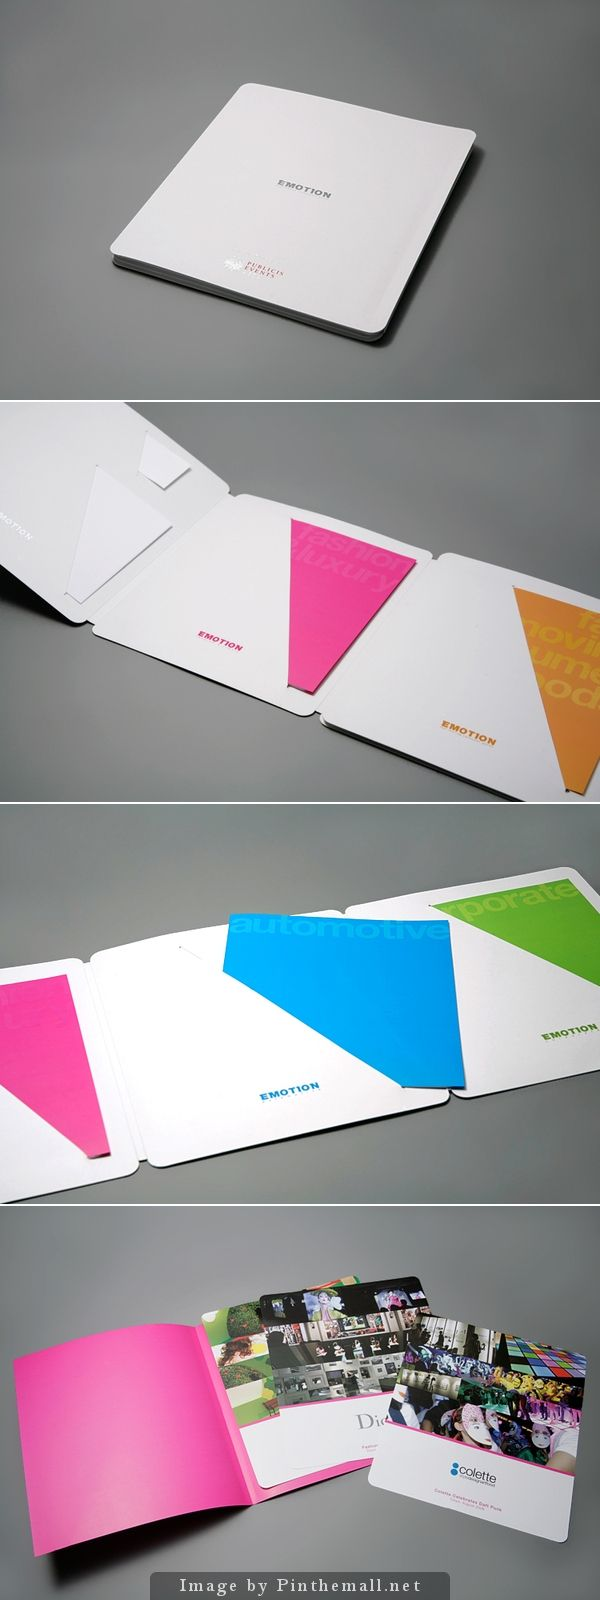 #design #collateral #marketing Beautiful impact of color. Love this.